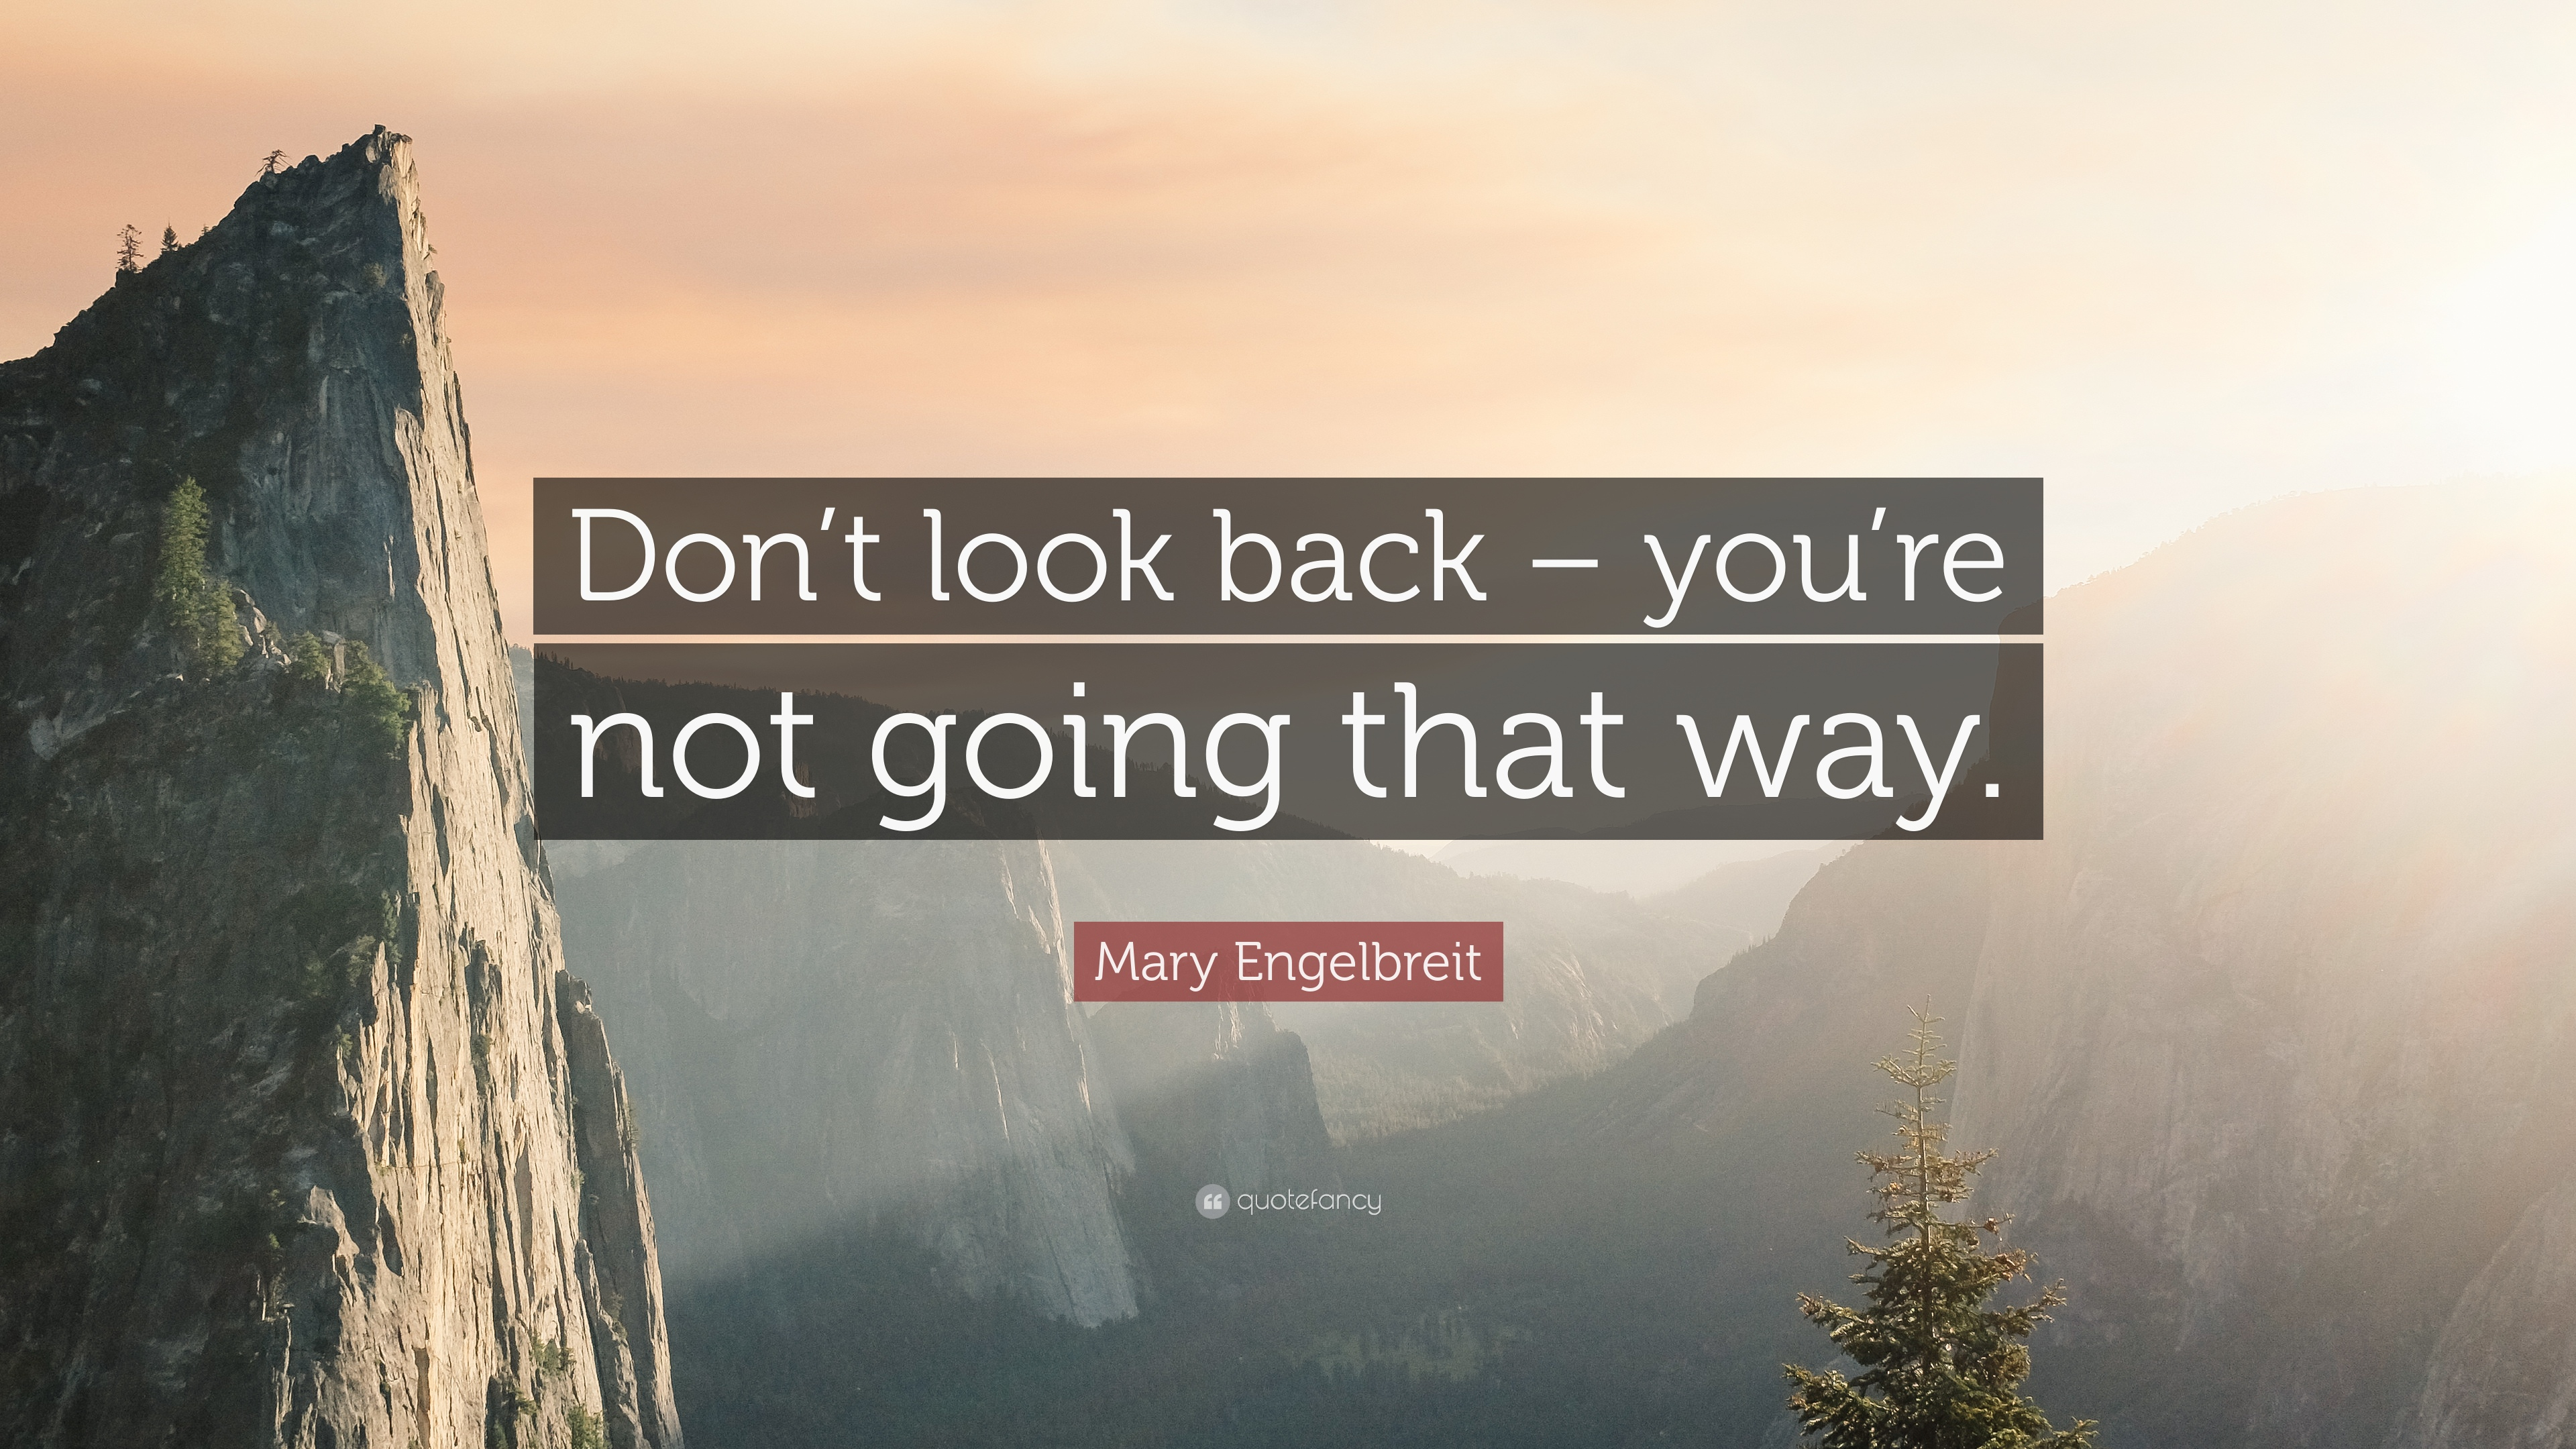 mary engelbreit quote don t look back you re not going that way 12 wallpapers quotefancy. Black Bedroom Furniture Sets. Home Design Ideas